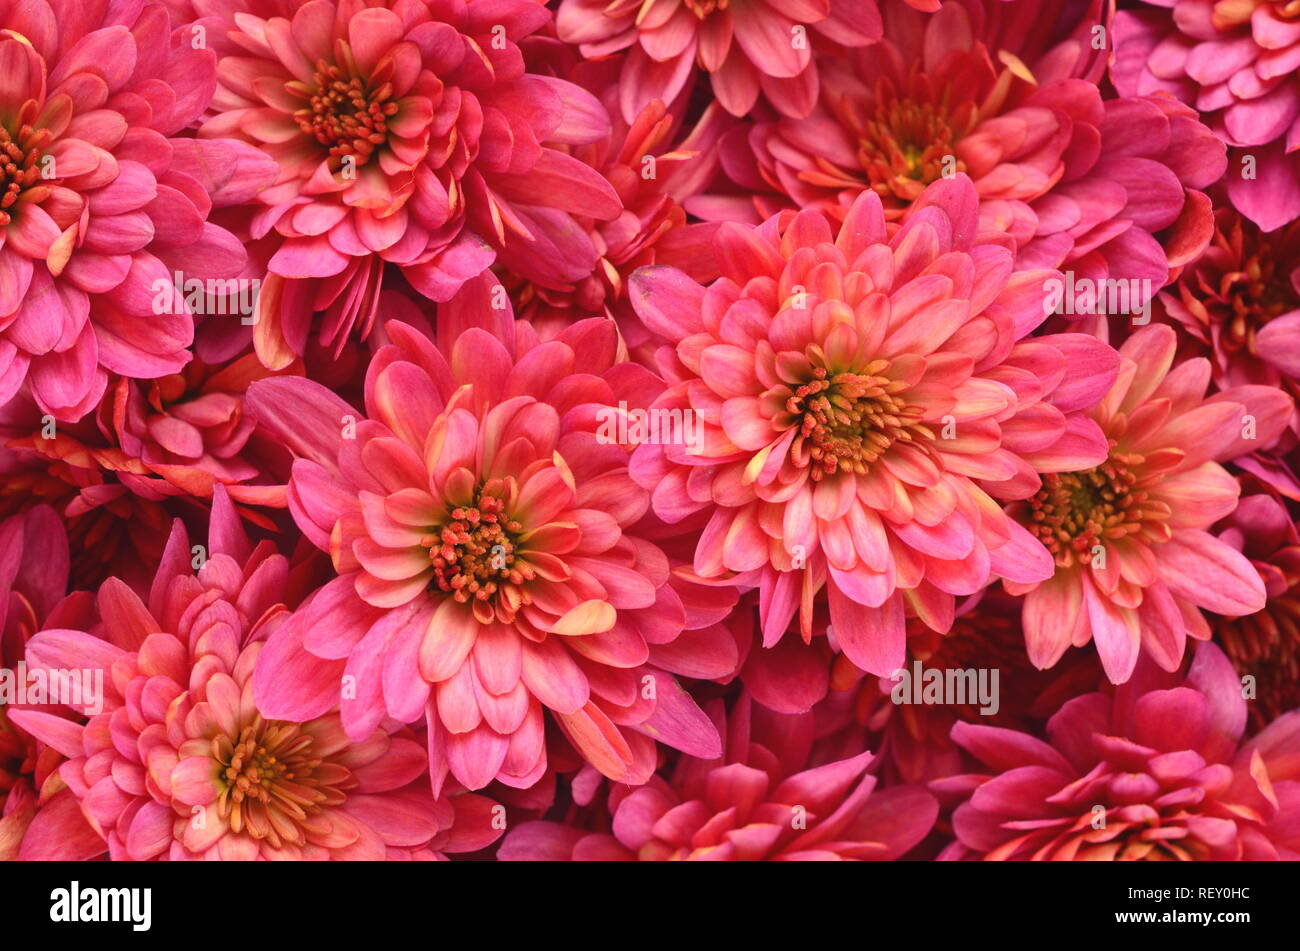 Fall Autumn Floral Background With Deep Red Chrysantemums On White